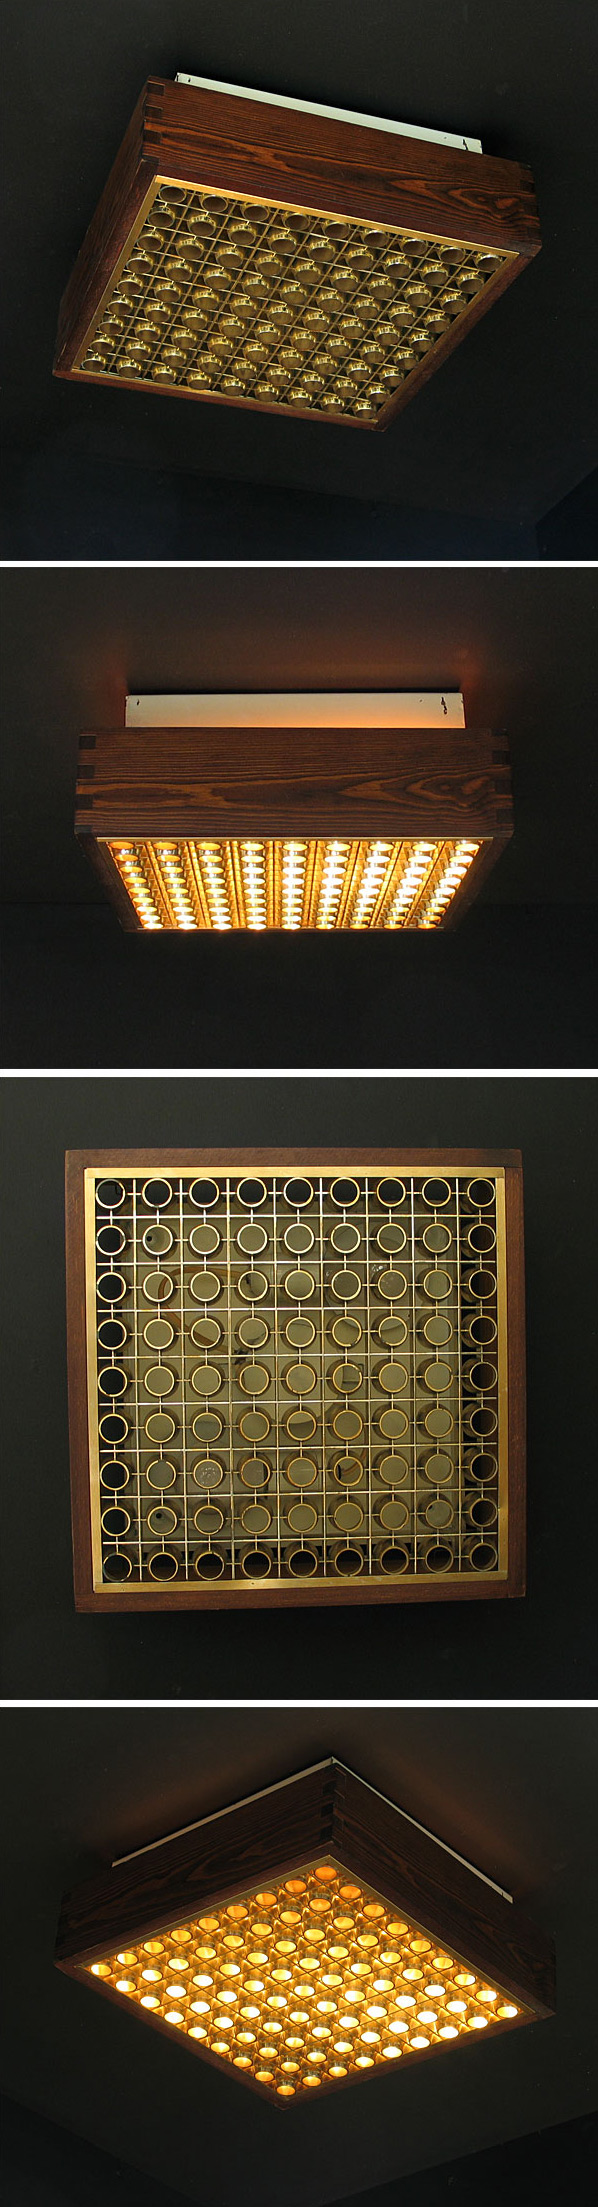 Wooden ceiling lamp illuminated behind grating Wabbes Large